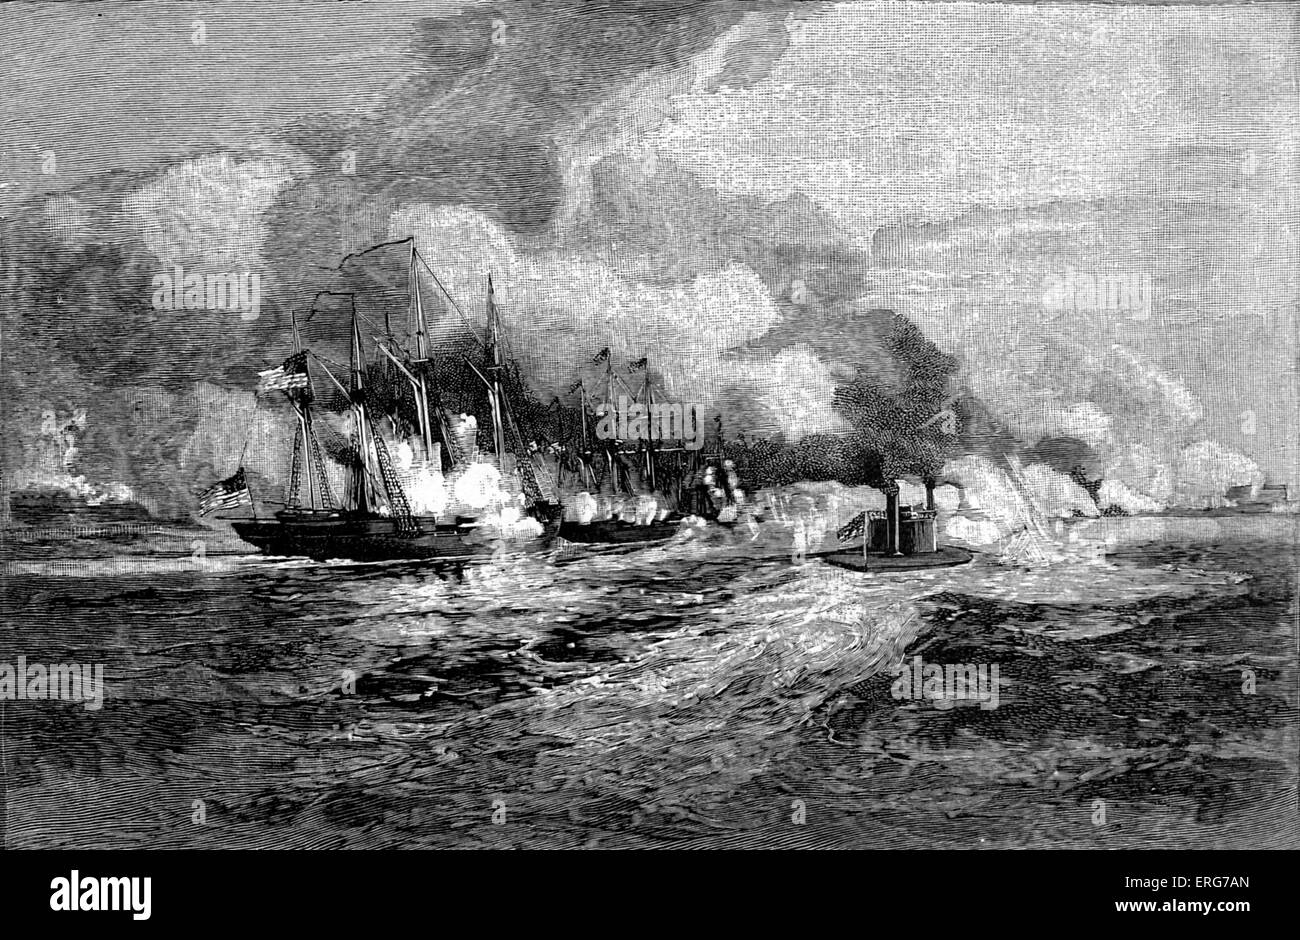 Uss lackawanna vs css tennessee at the battle of mobile bay august 6 - The Battle Of Mobile Bay 5 August 1864 From A Wartime Sketch